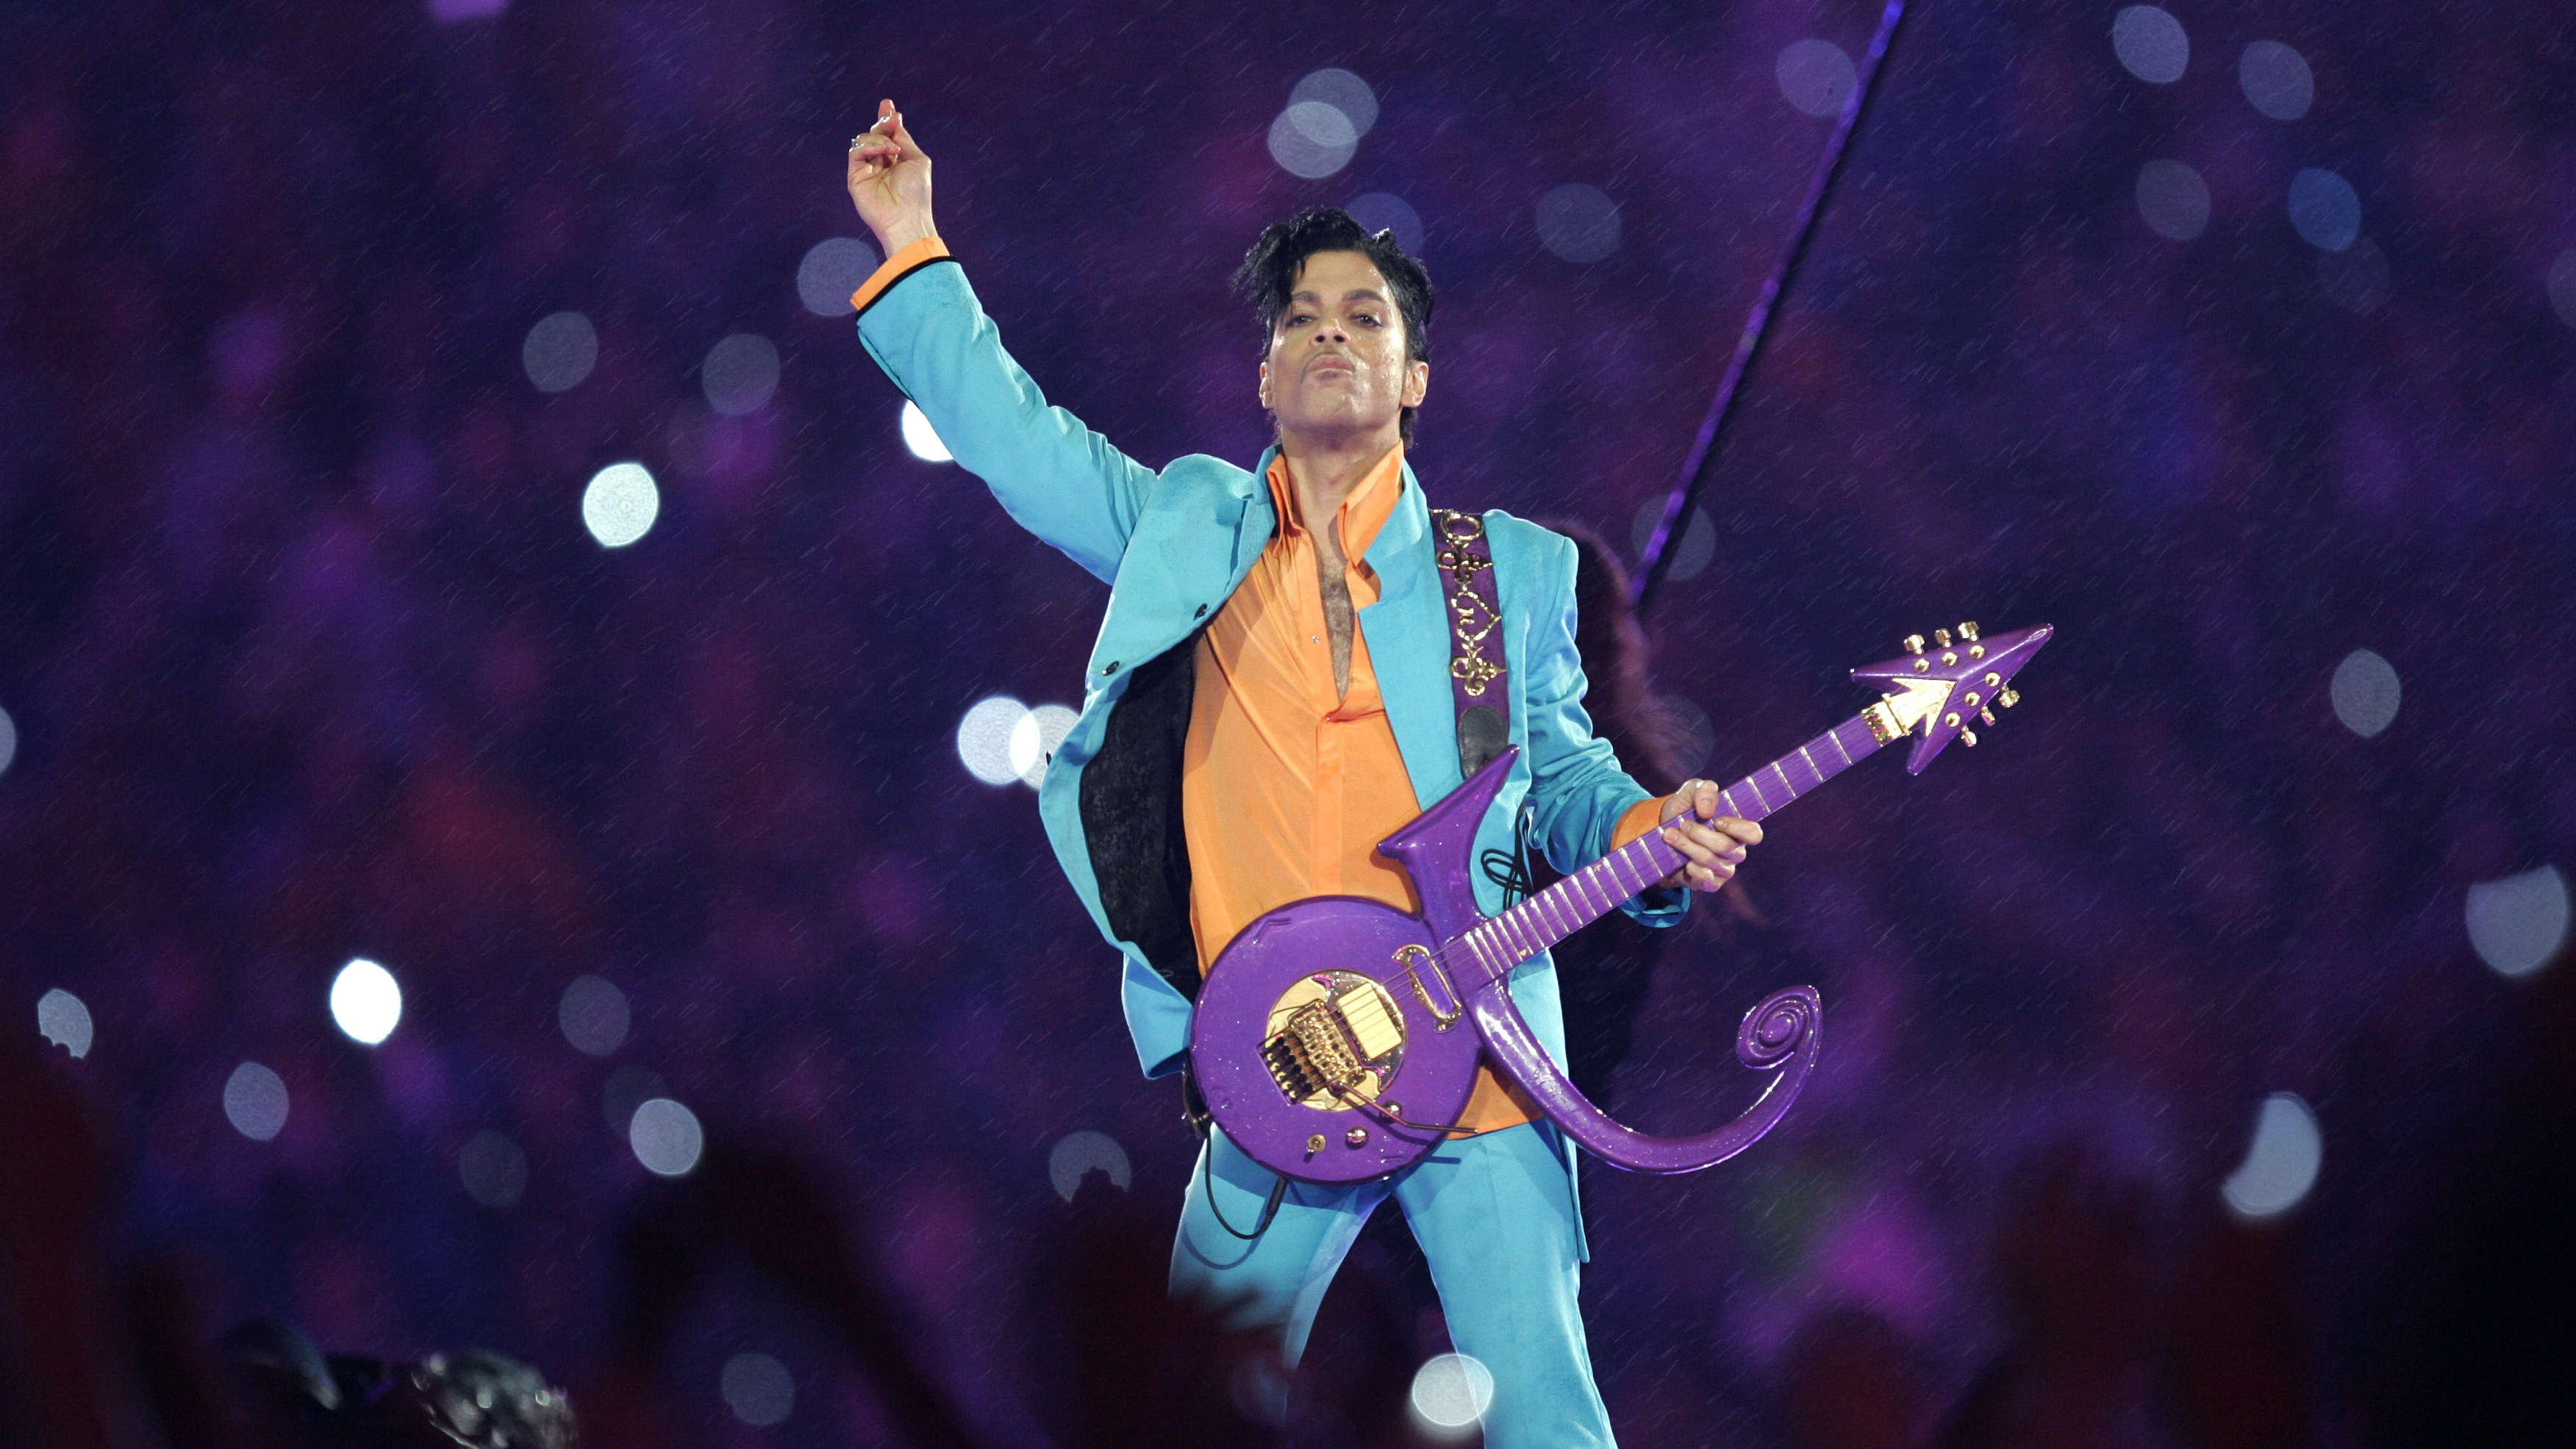 Prince performs during the halftime show at the Super Bowl XLI football game at Dolphin Stadium in Miami on Sunday, Feb. 4, 2007.